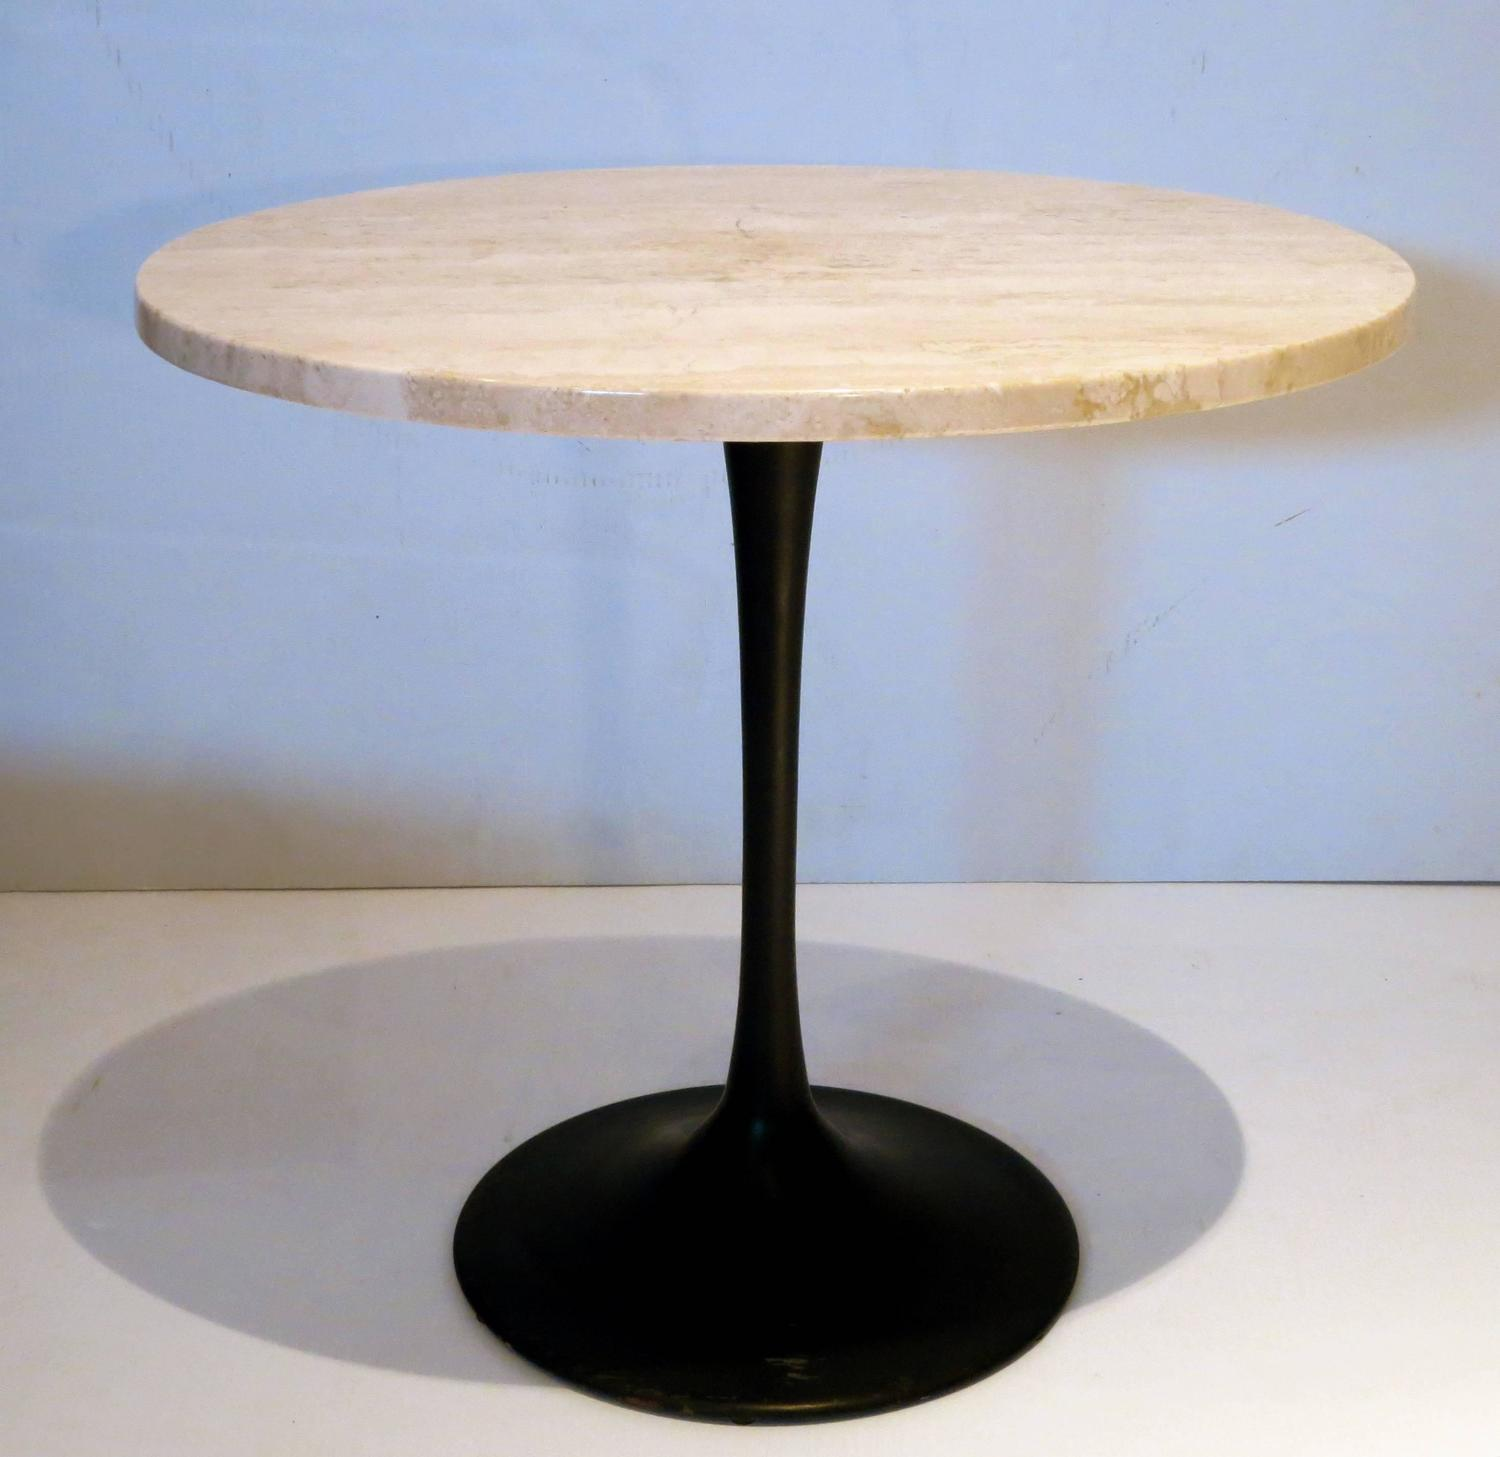 1970s Marble And Black Enameled Metal Base Oval Cocktail